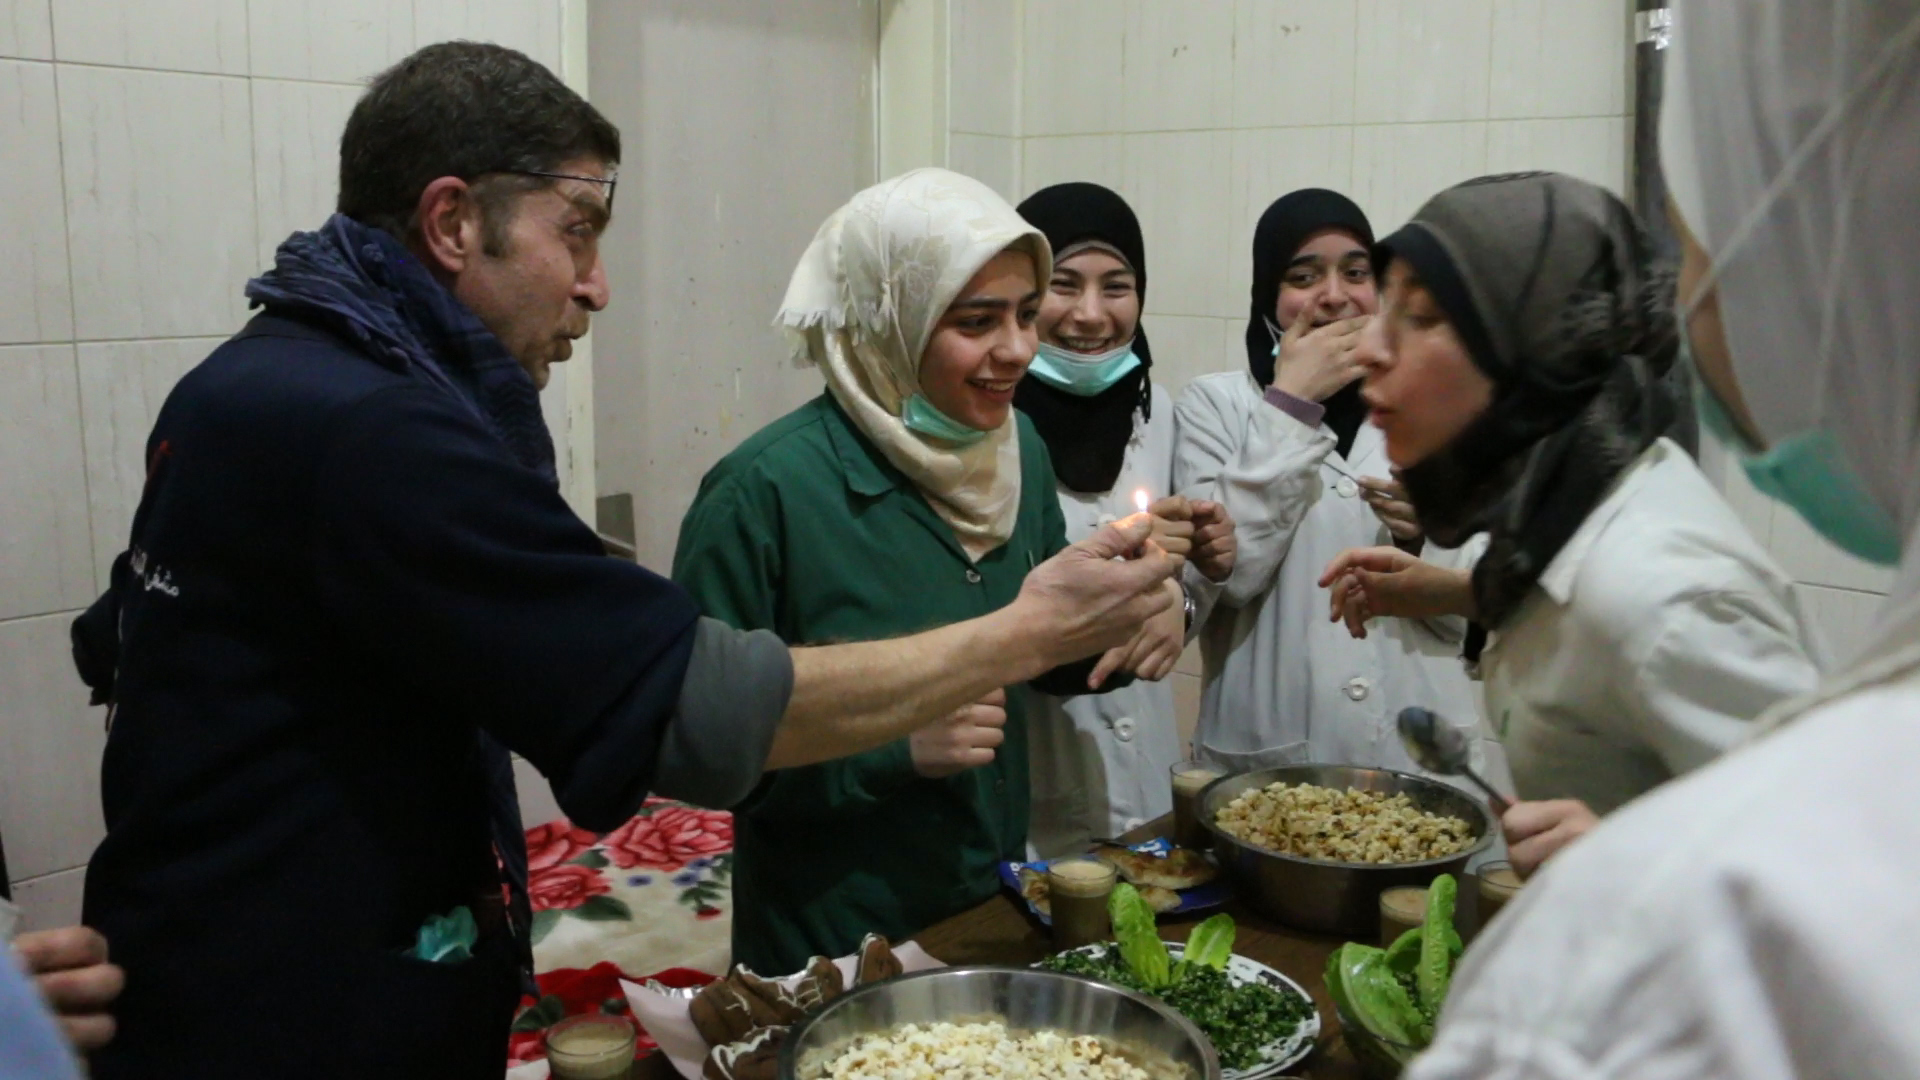 Al Ghouta, Syria - Dr Salim (L) holds a light for Amani (R) to blow out during her birthday celebration in the hospital.